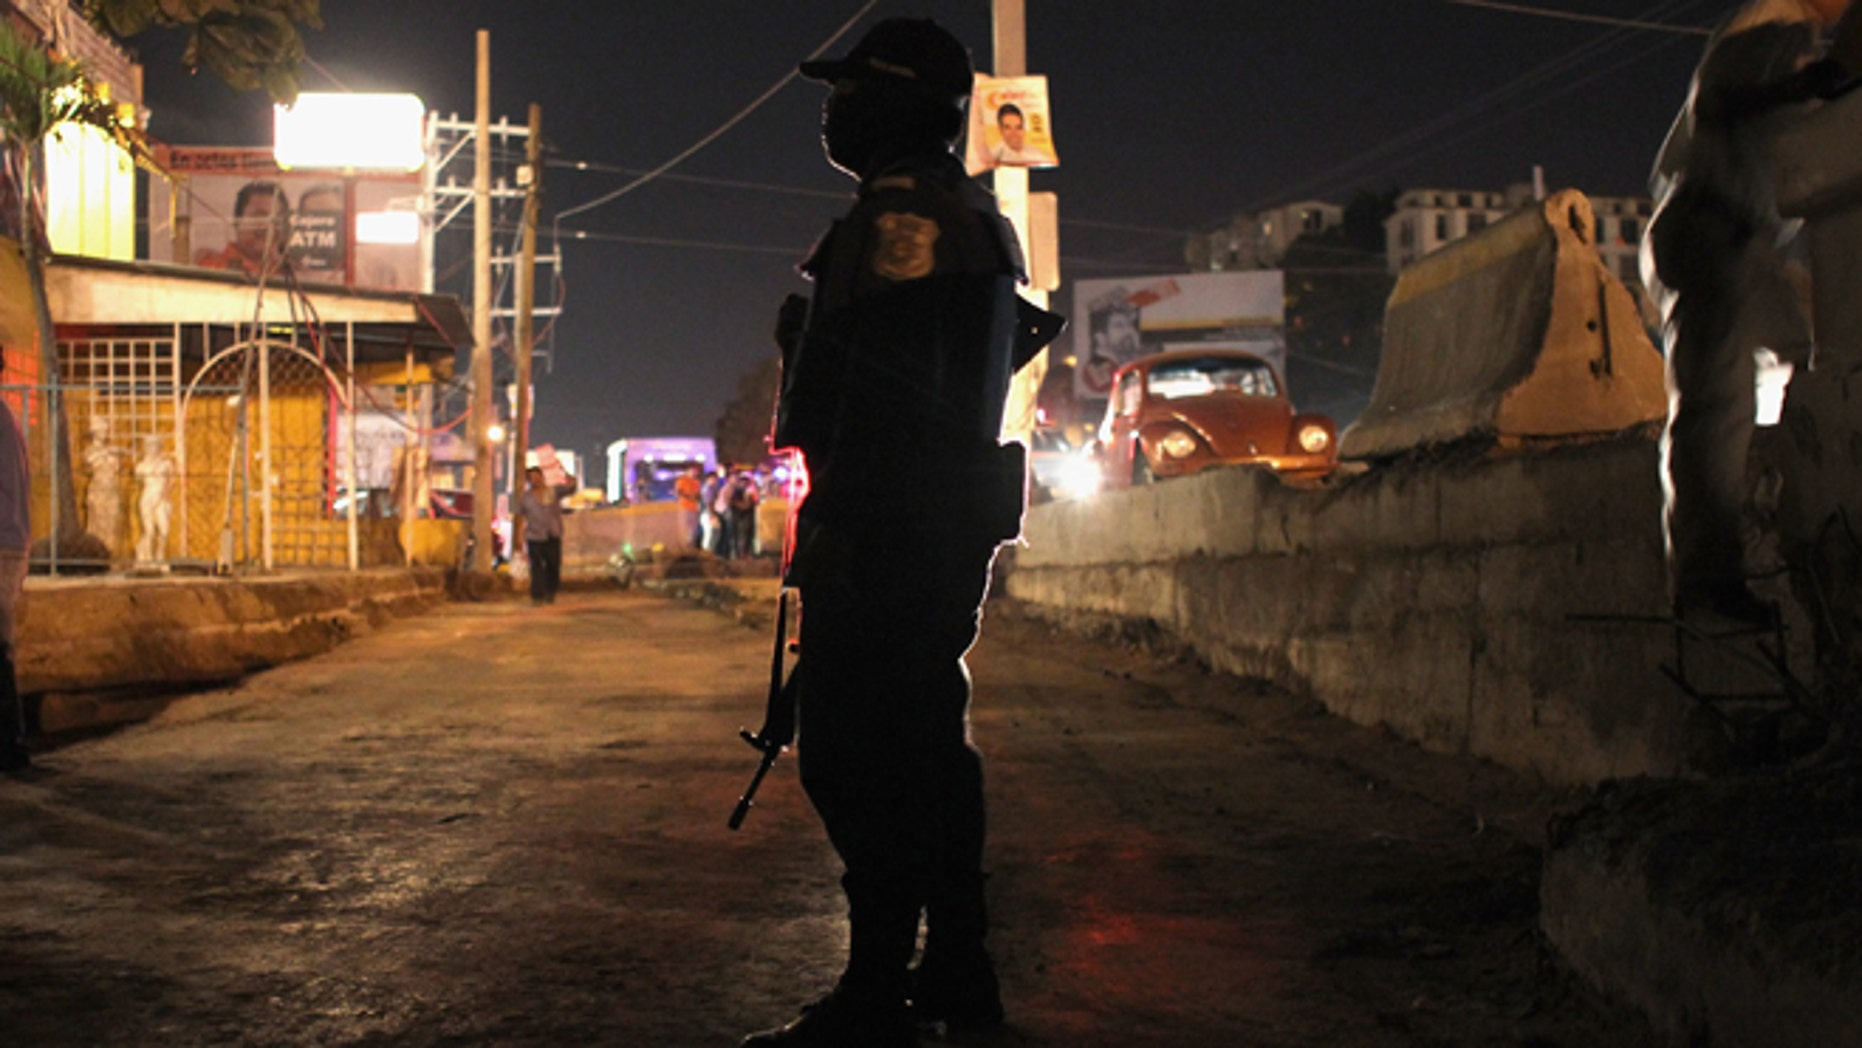 A federal policeman stands guard at the scene of a suspected drug-related execution on March 1, 2012 in Acapulco, Mexico. (Photo by John Moore/Getty Images)